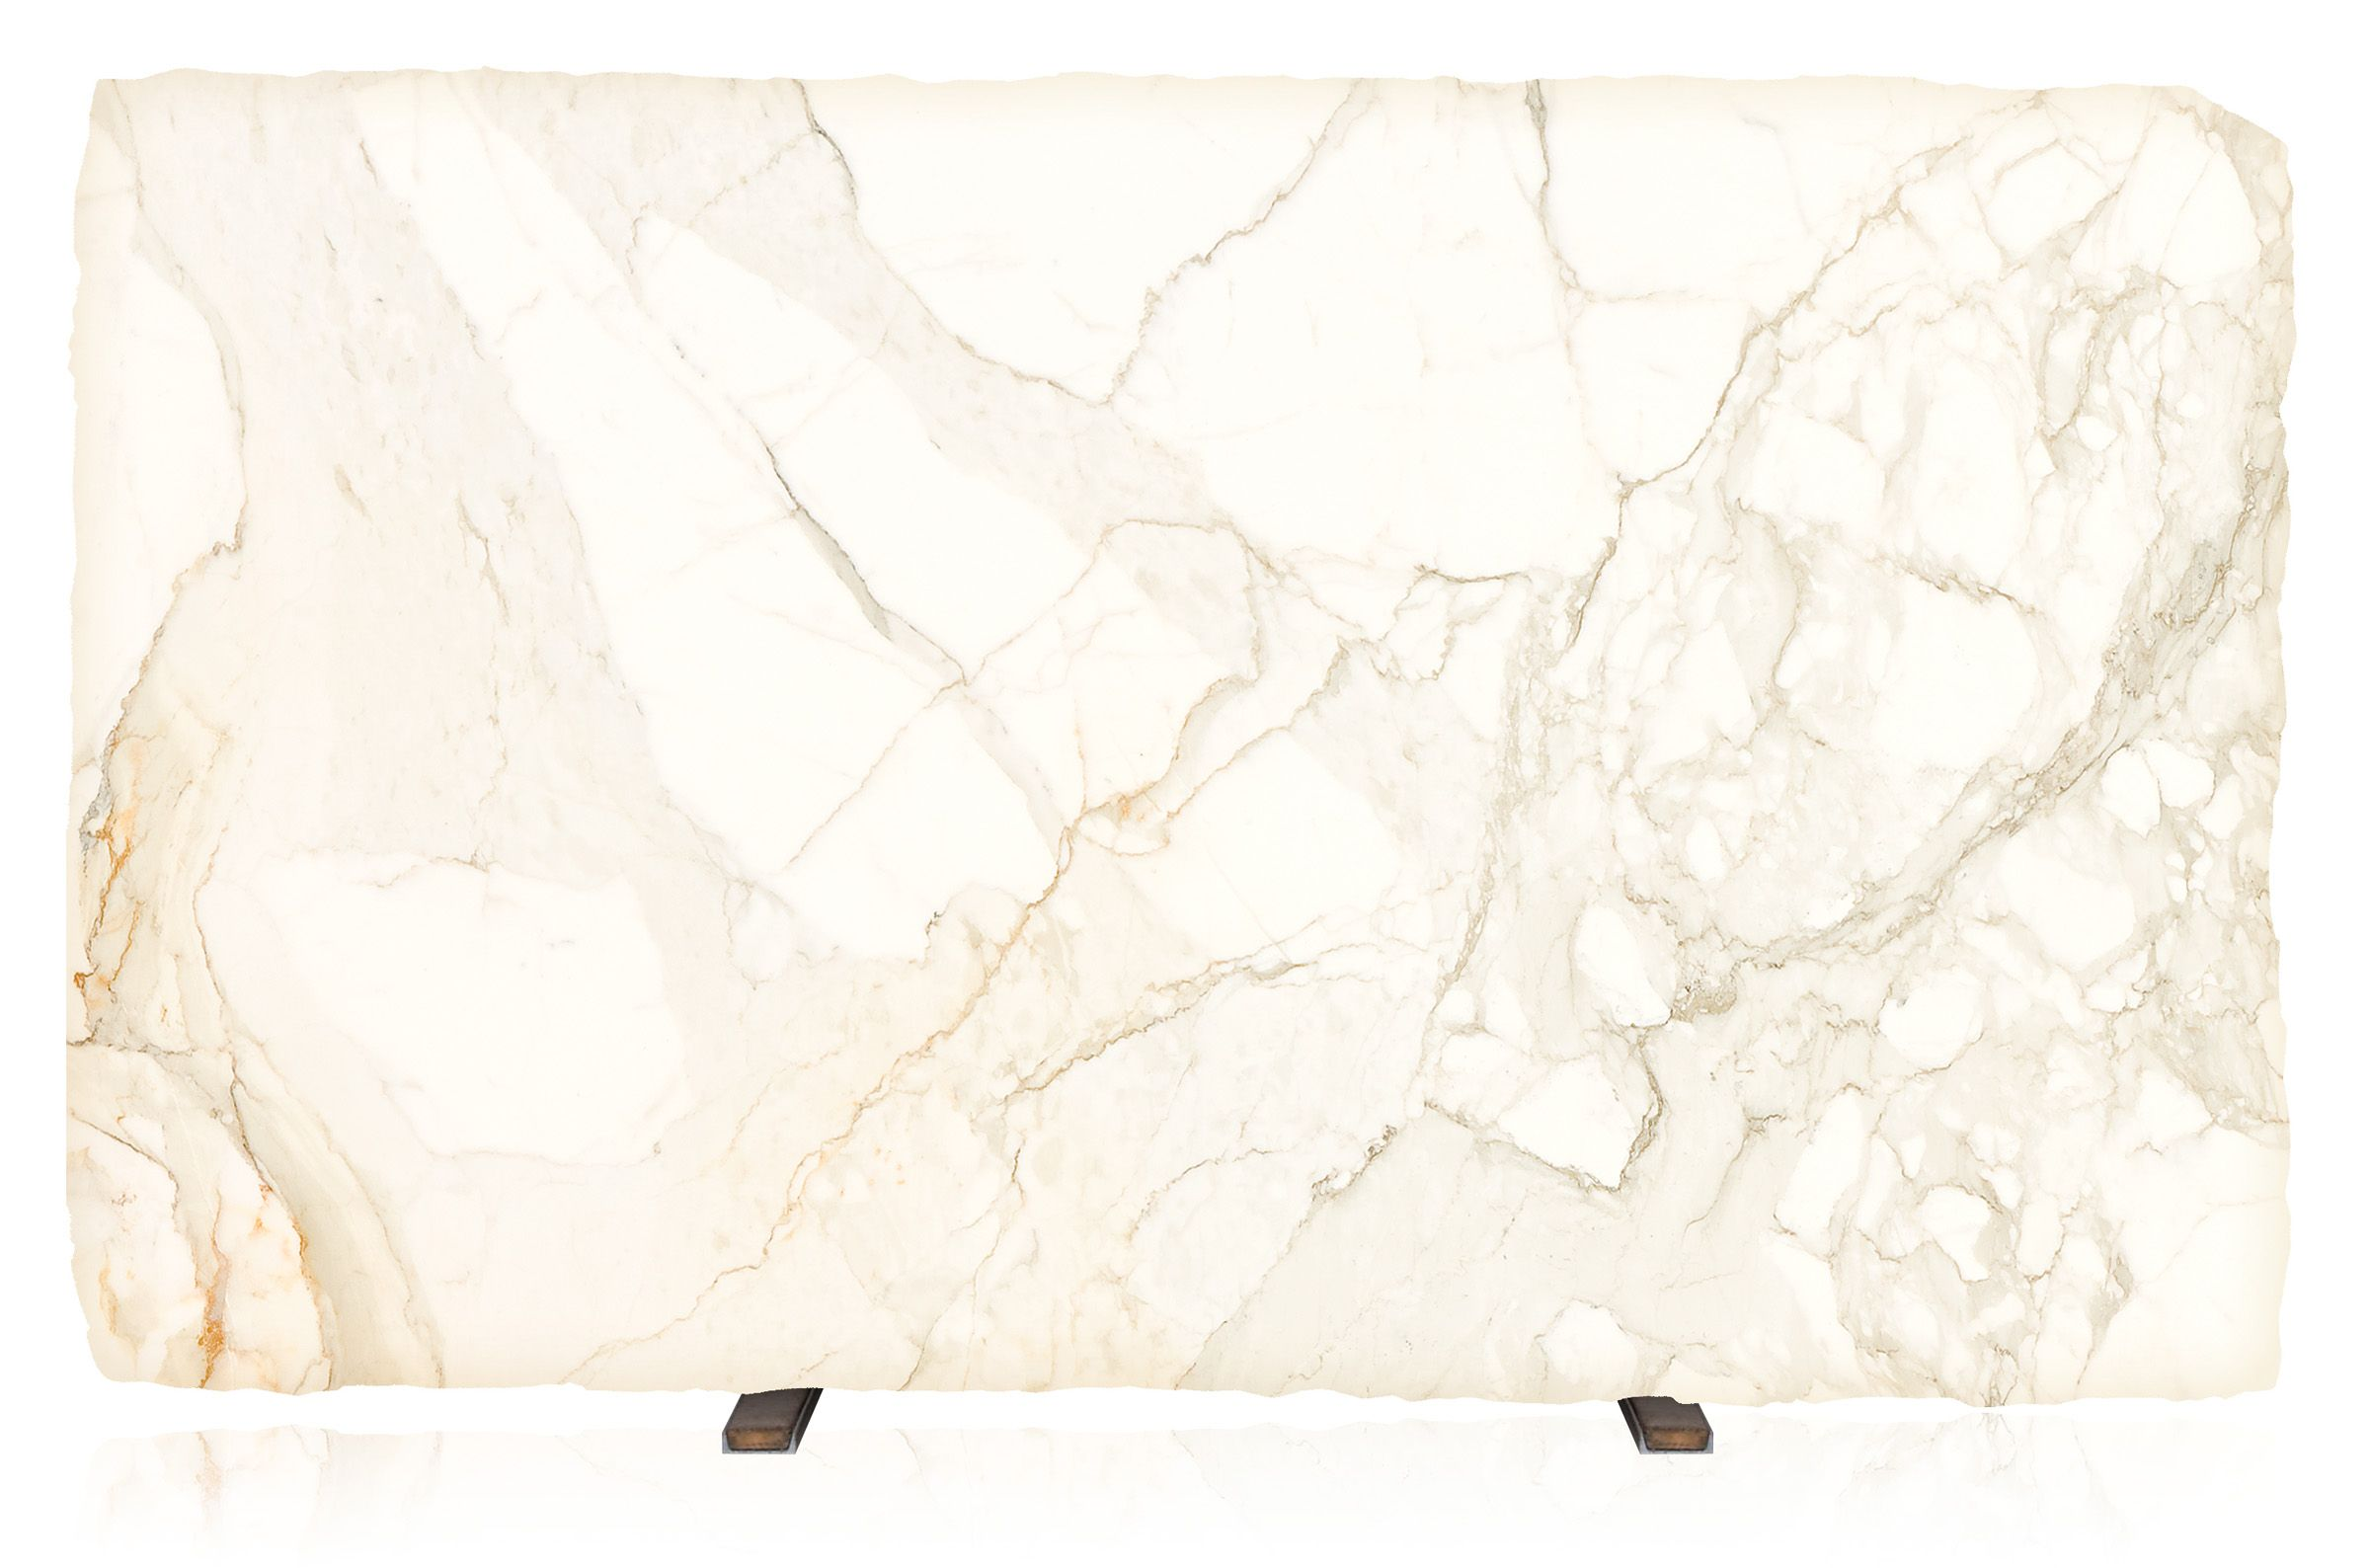 Calacatta Gold Ag Amp M Granite Is It Possible To Fall In